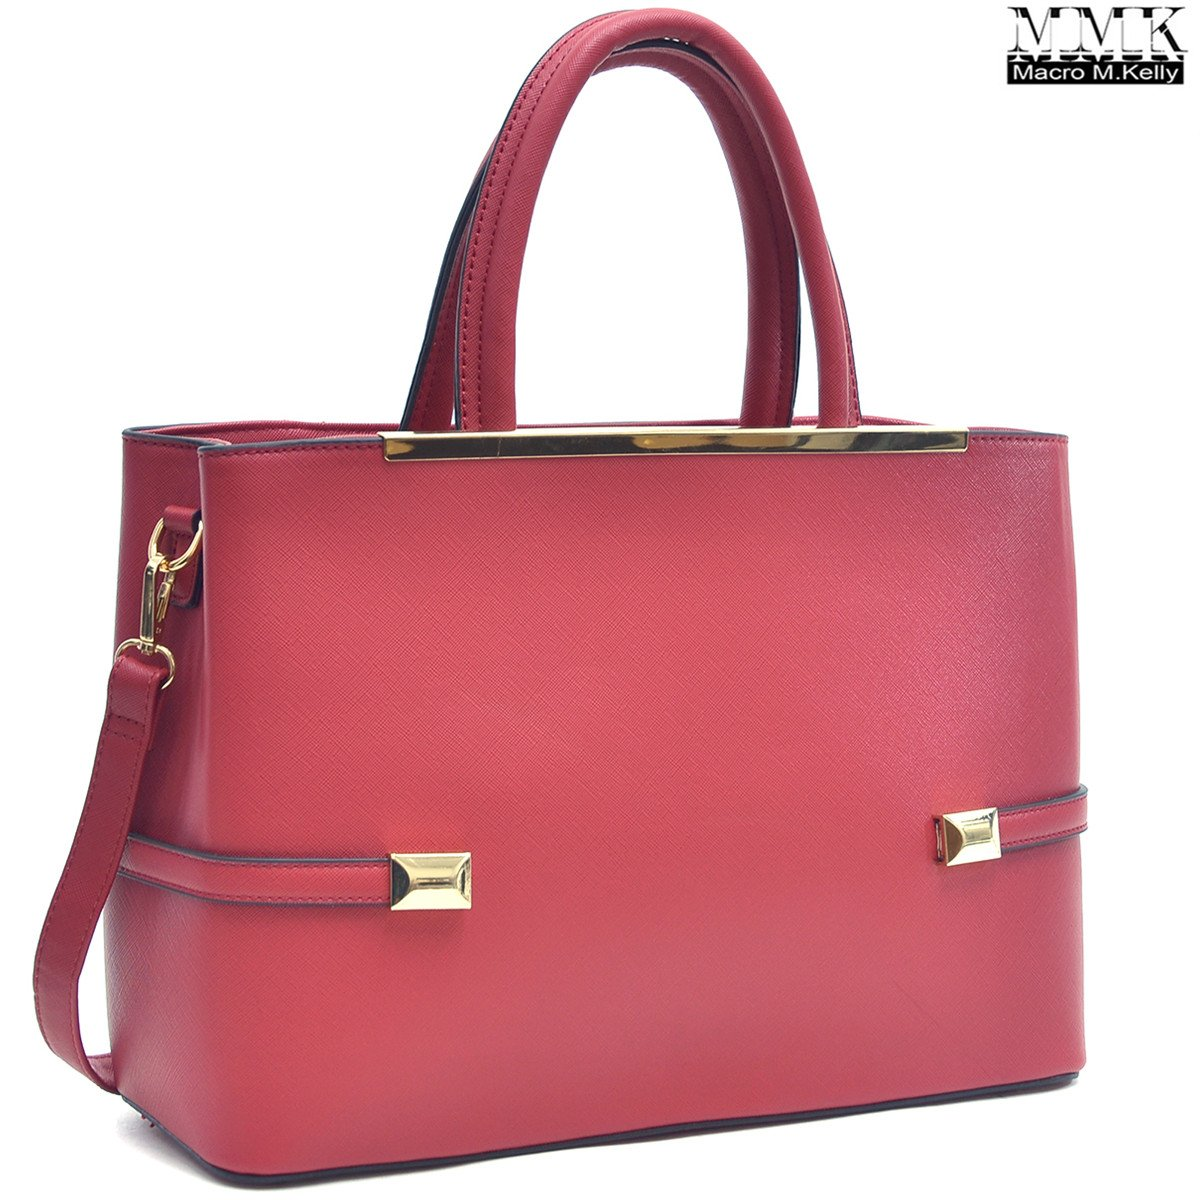 MMK Collection Women Solid Color Large Size PU Leather Simple Concise Business Style(8895N) with Gold Tone Framed Tote Bag Top Handle Bag Handbag with Shoulder Strap (Red)